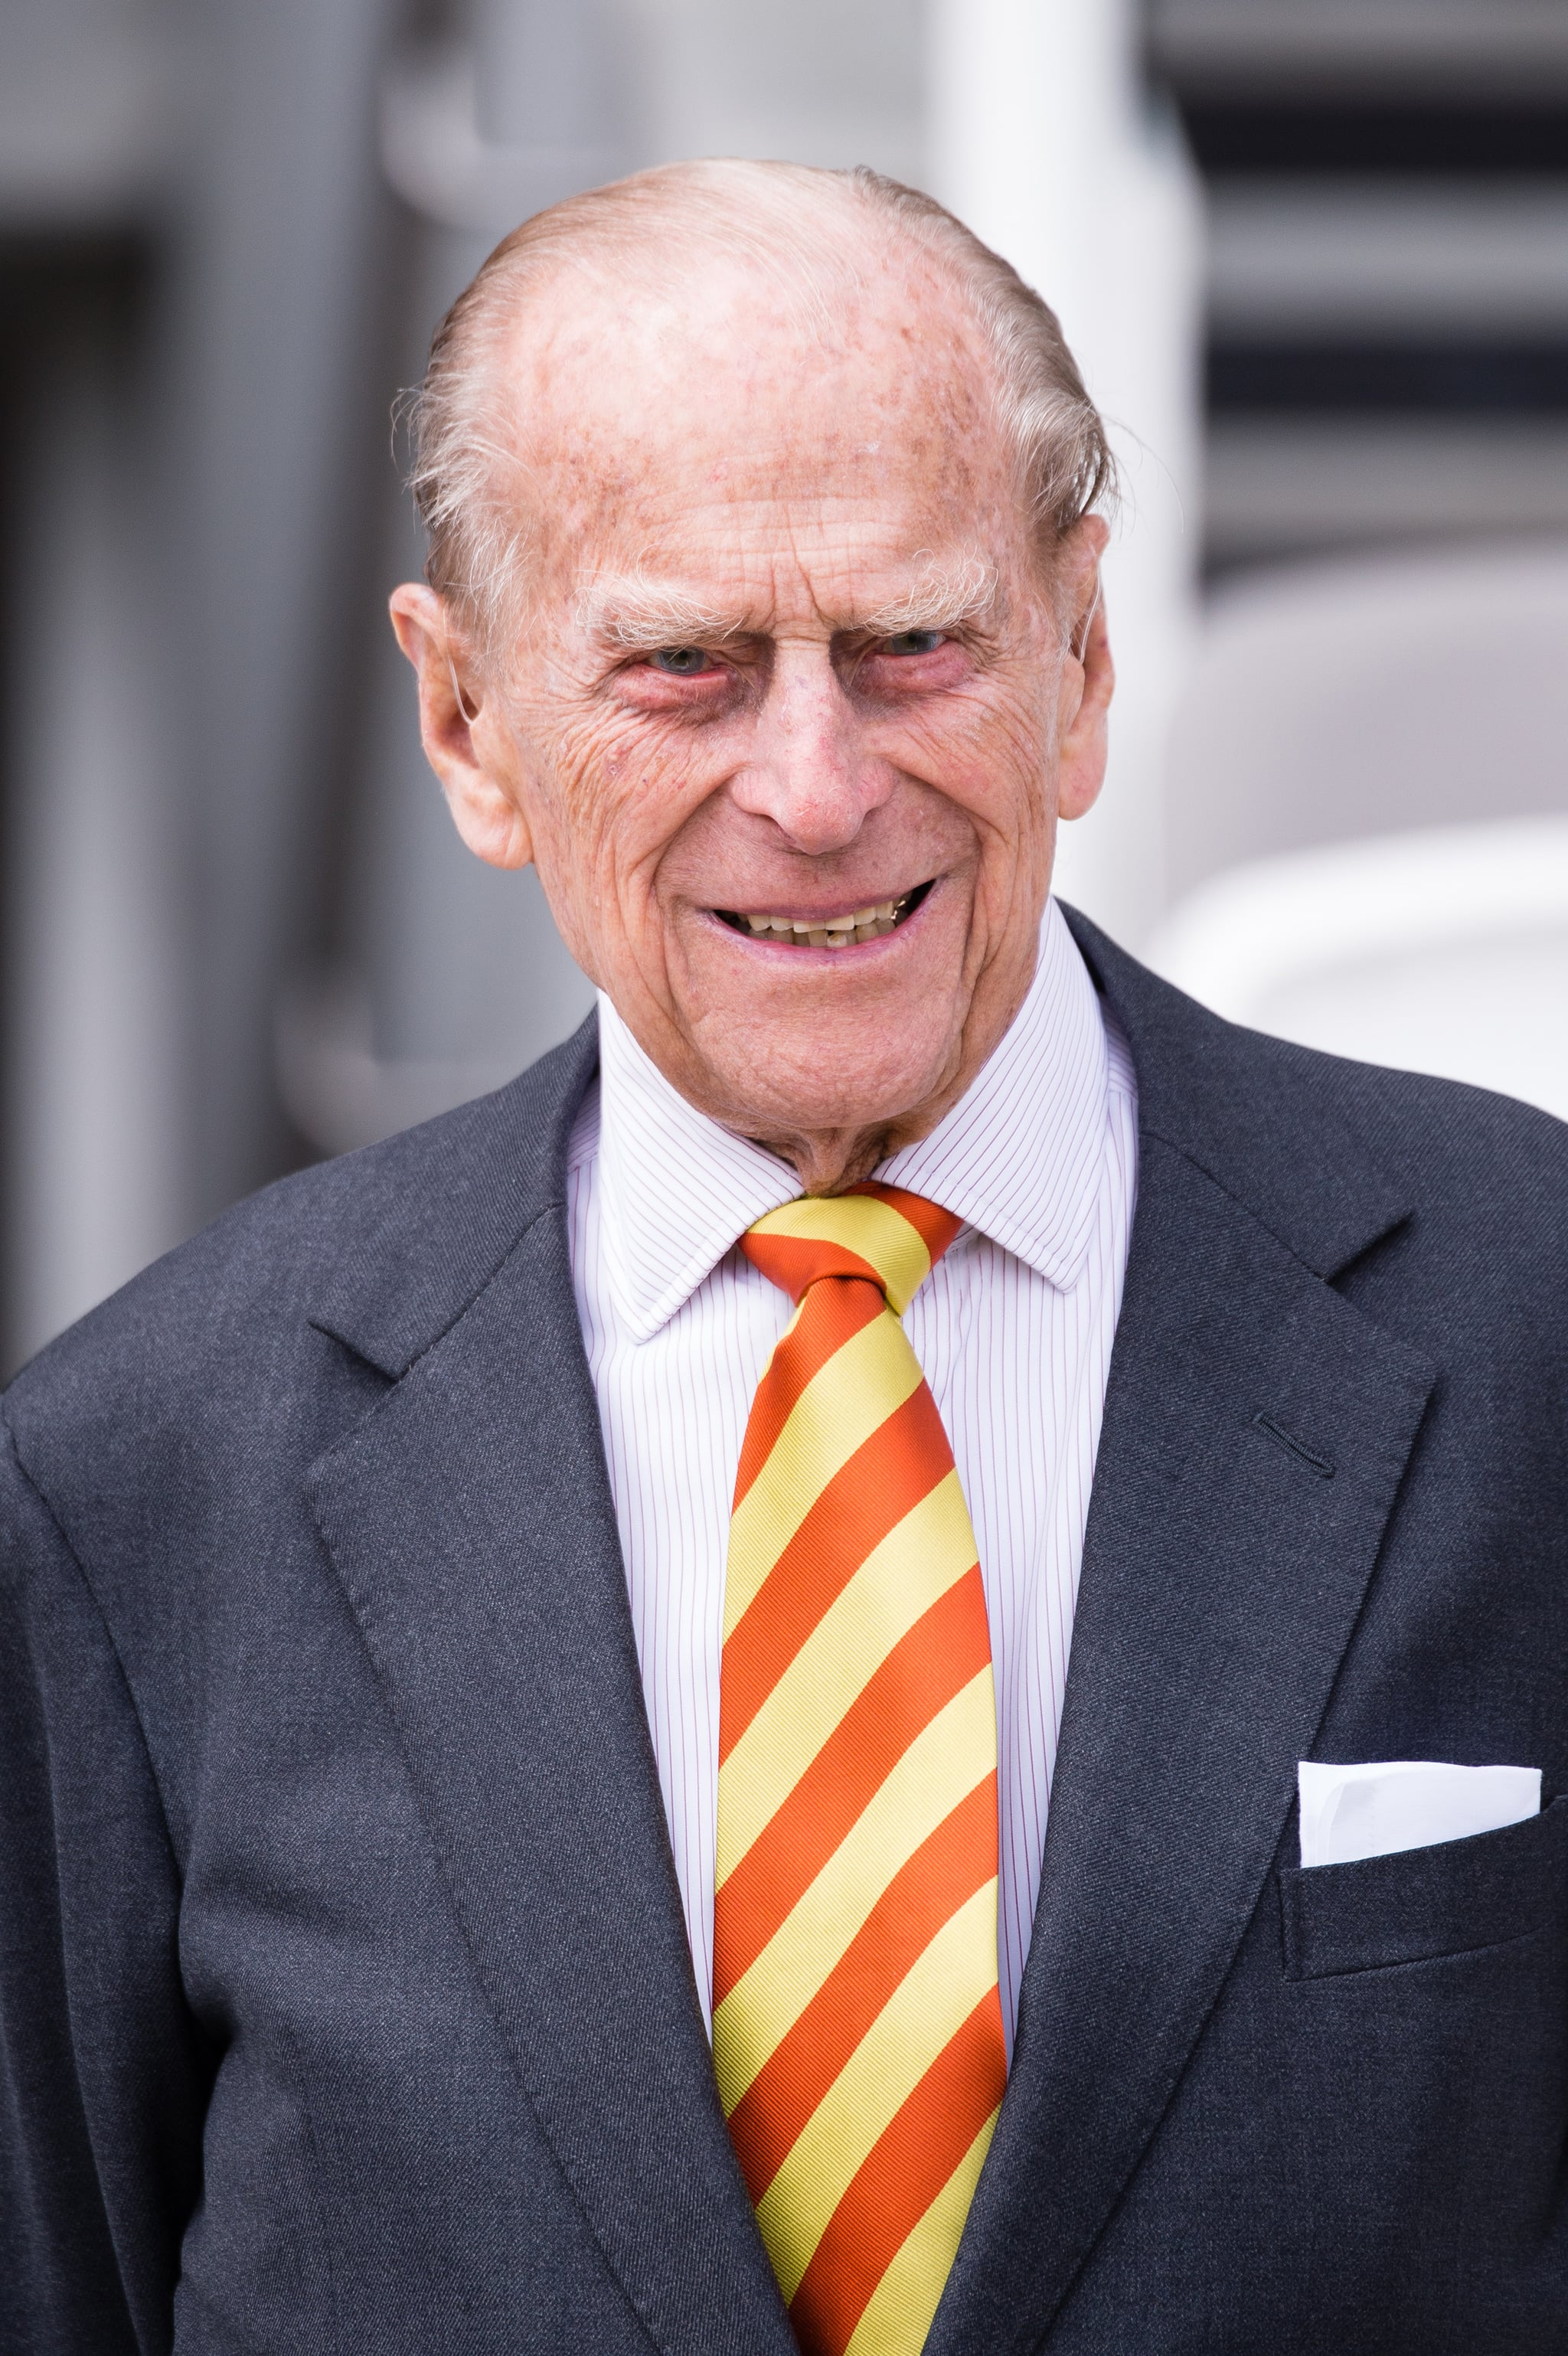 Prince Philip Will No Longer Carry Out Public Engagements